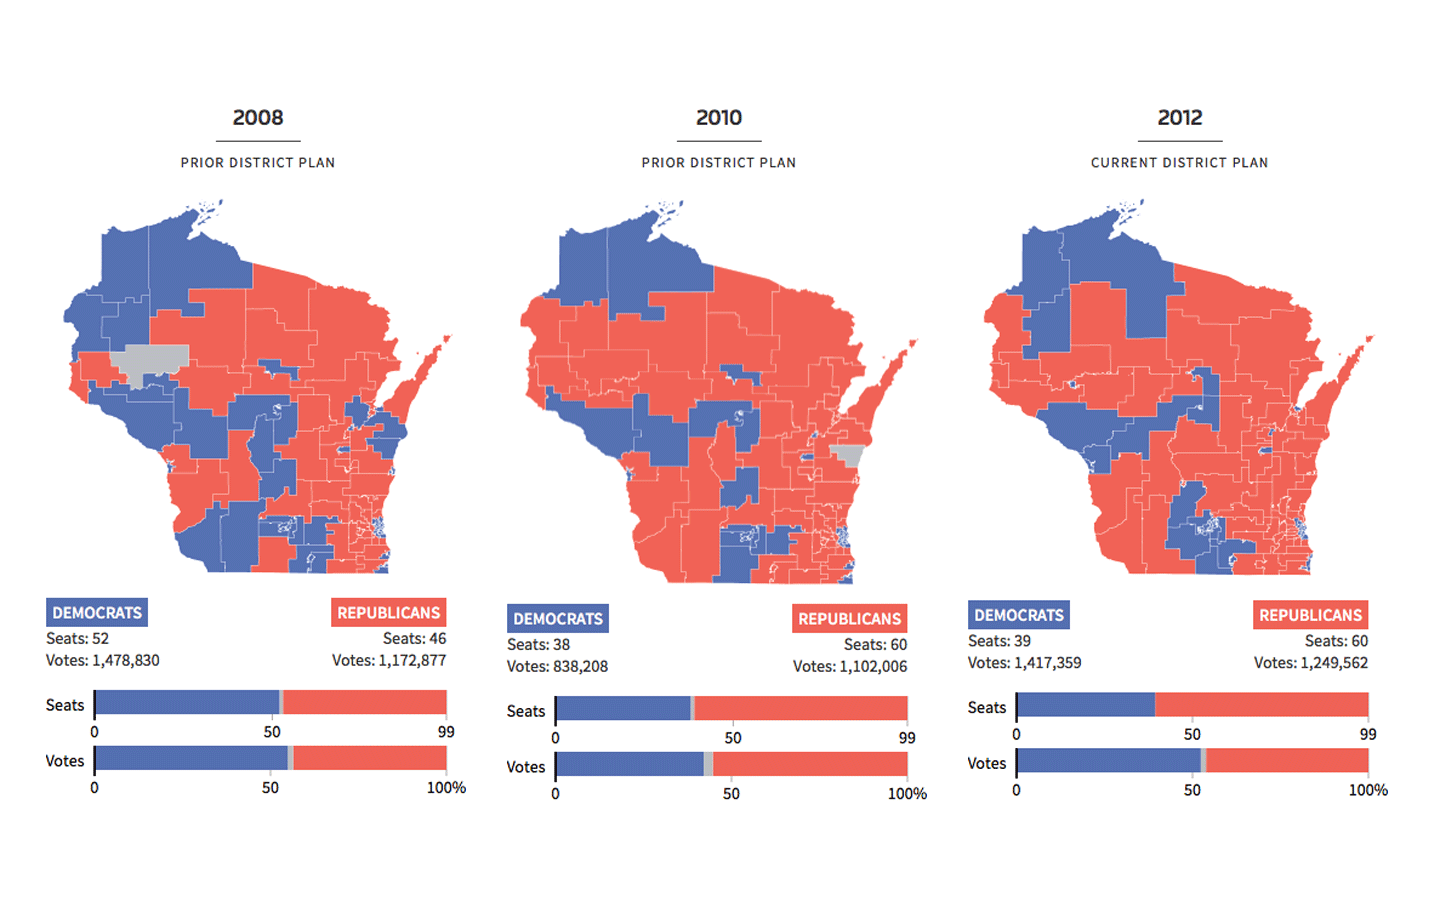 over claims that wisconsin republicans intentionally drafted state electoral districts in 2011 to drown out the voting strength of democrats reuters